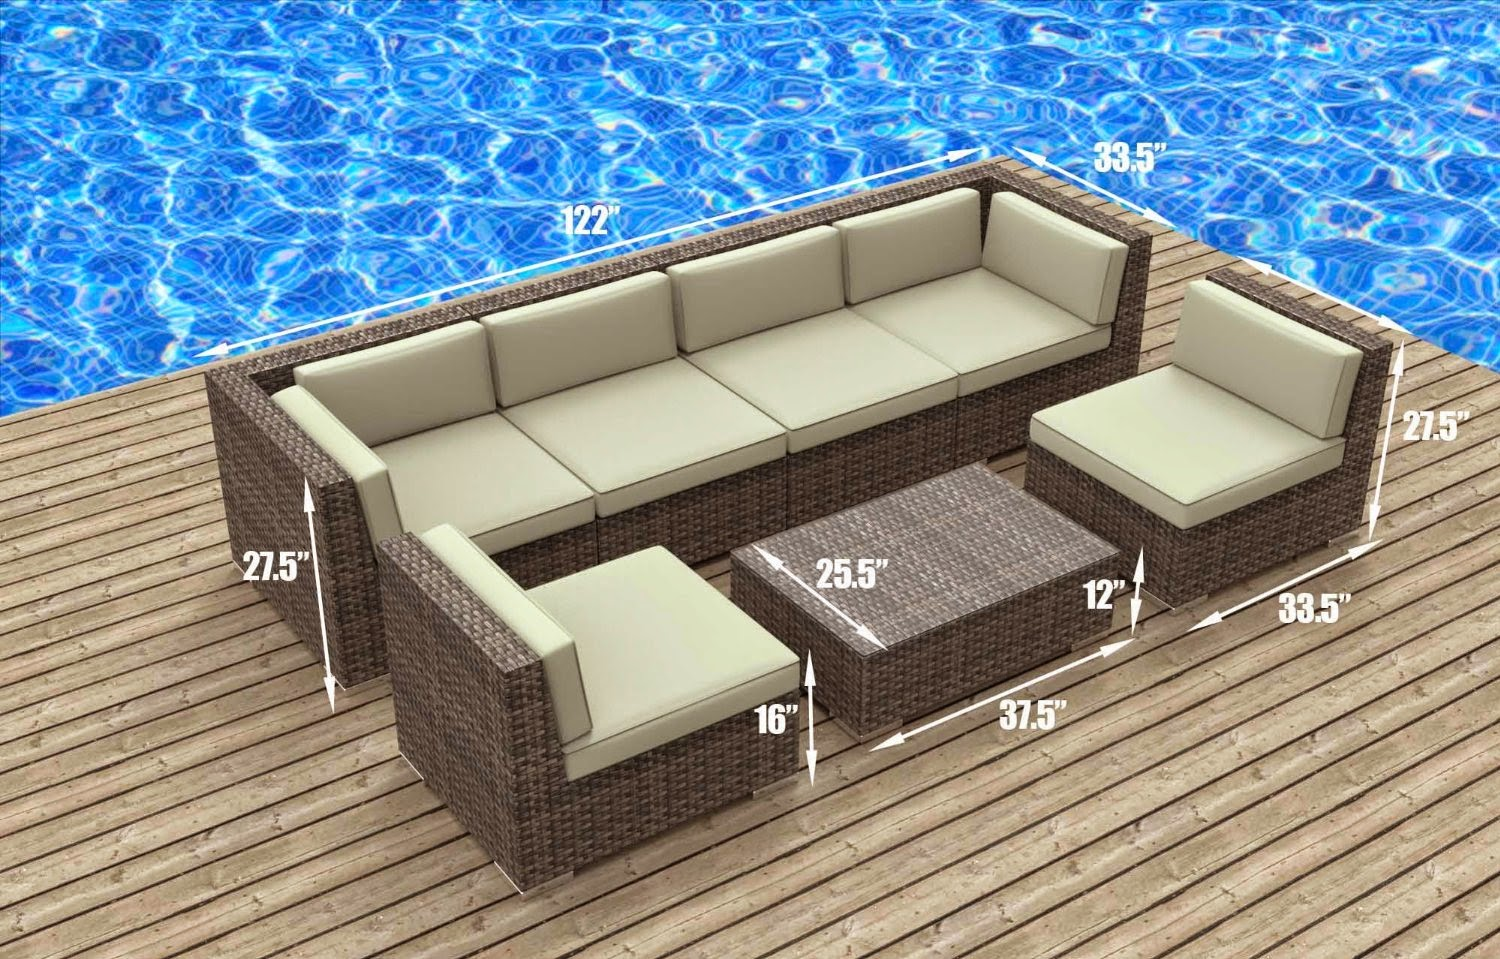 outdoor patio furniture sofa - Modern Patio Furniture. Image Of Modern Teak Outdoor Furniture